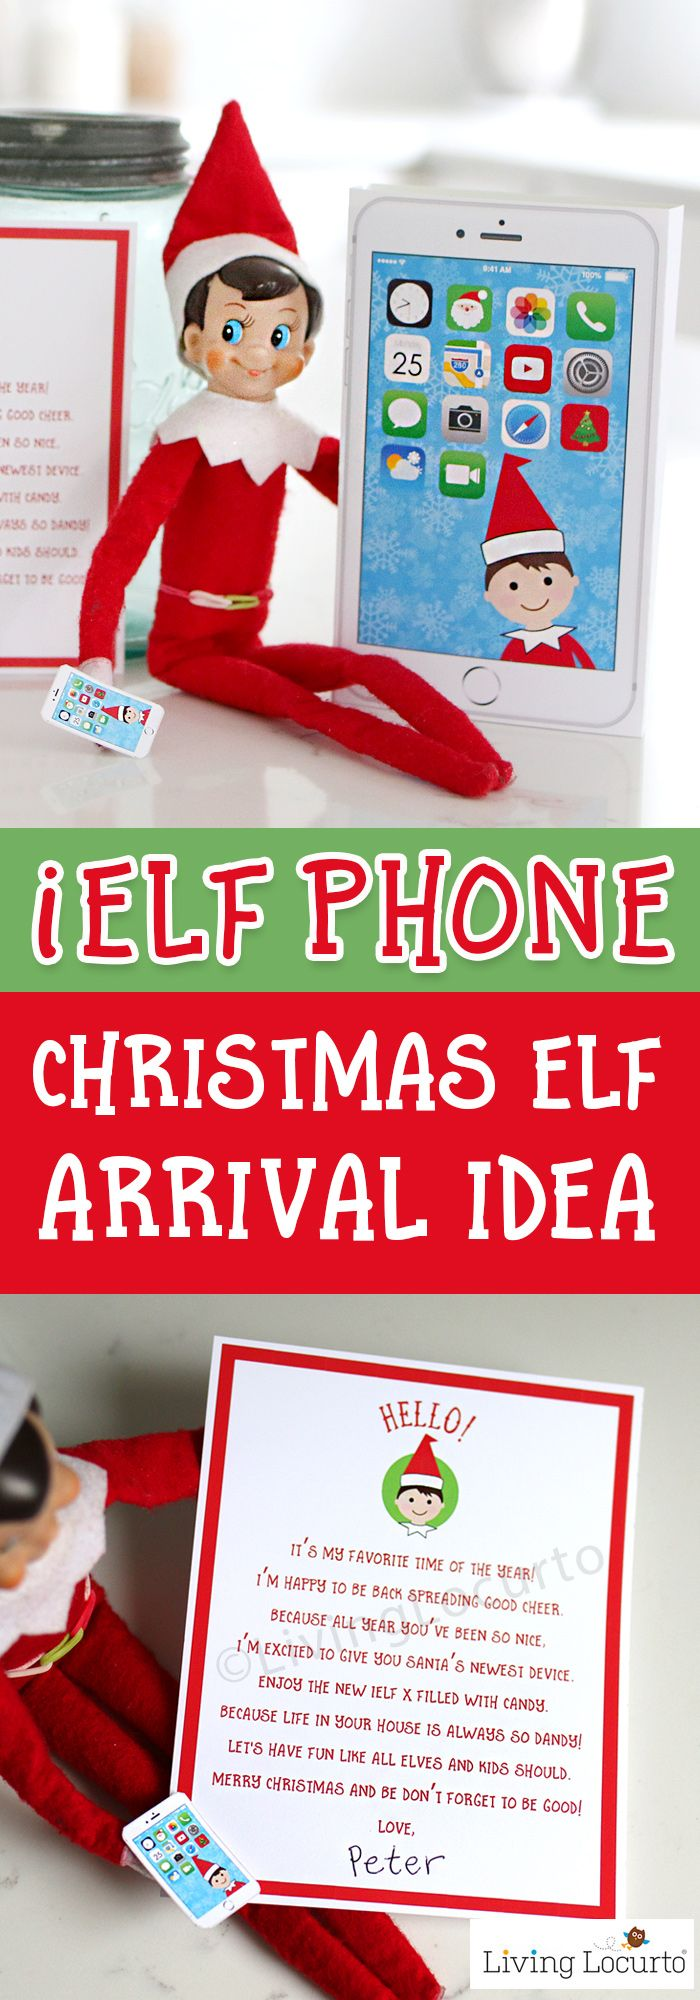 best 25+ santa phone ideas on pinterest | santa phone call, santa